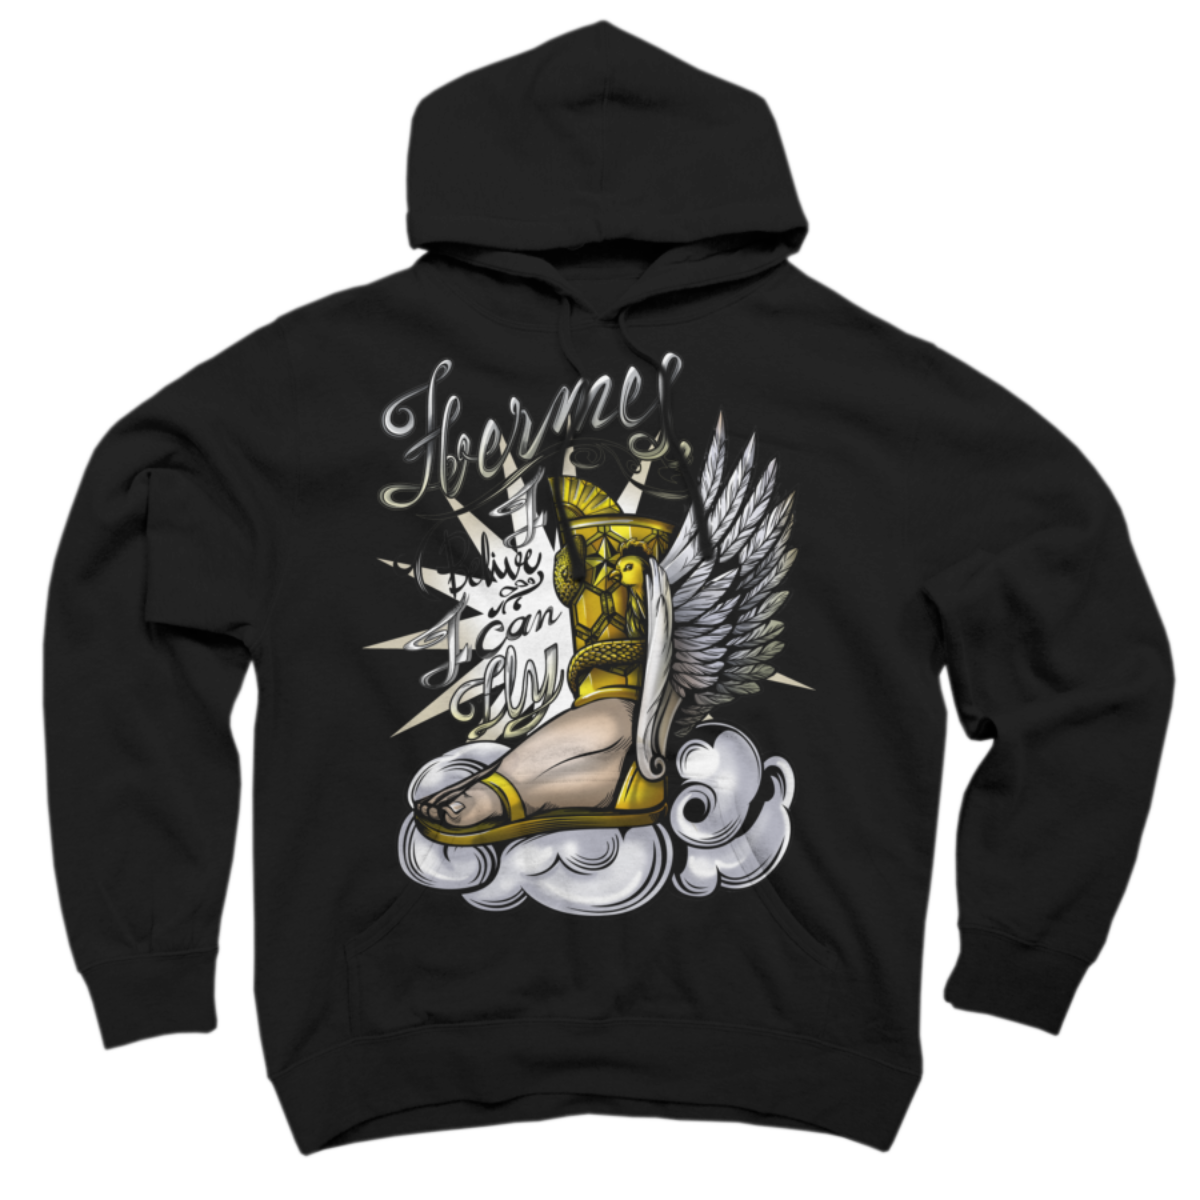 hermes Pullover Hoodie hermes is a cozy ring spun cotton Black %type designed by mayyahooo. This design is featured in people, sci-fi & fantasy designs. Shop DesignByHumans.com for the best selection of cool graphic tees, tank tops, sweatshirts, notebooks, phone cases, and art prints.